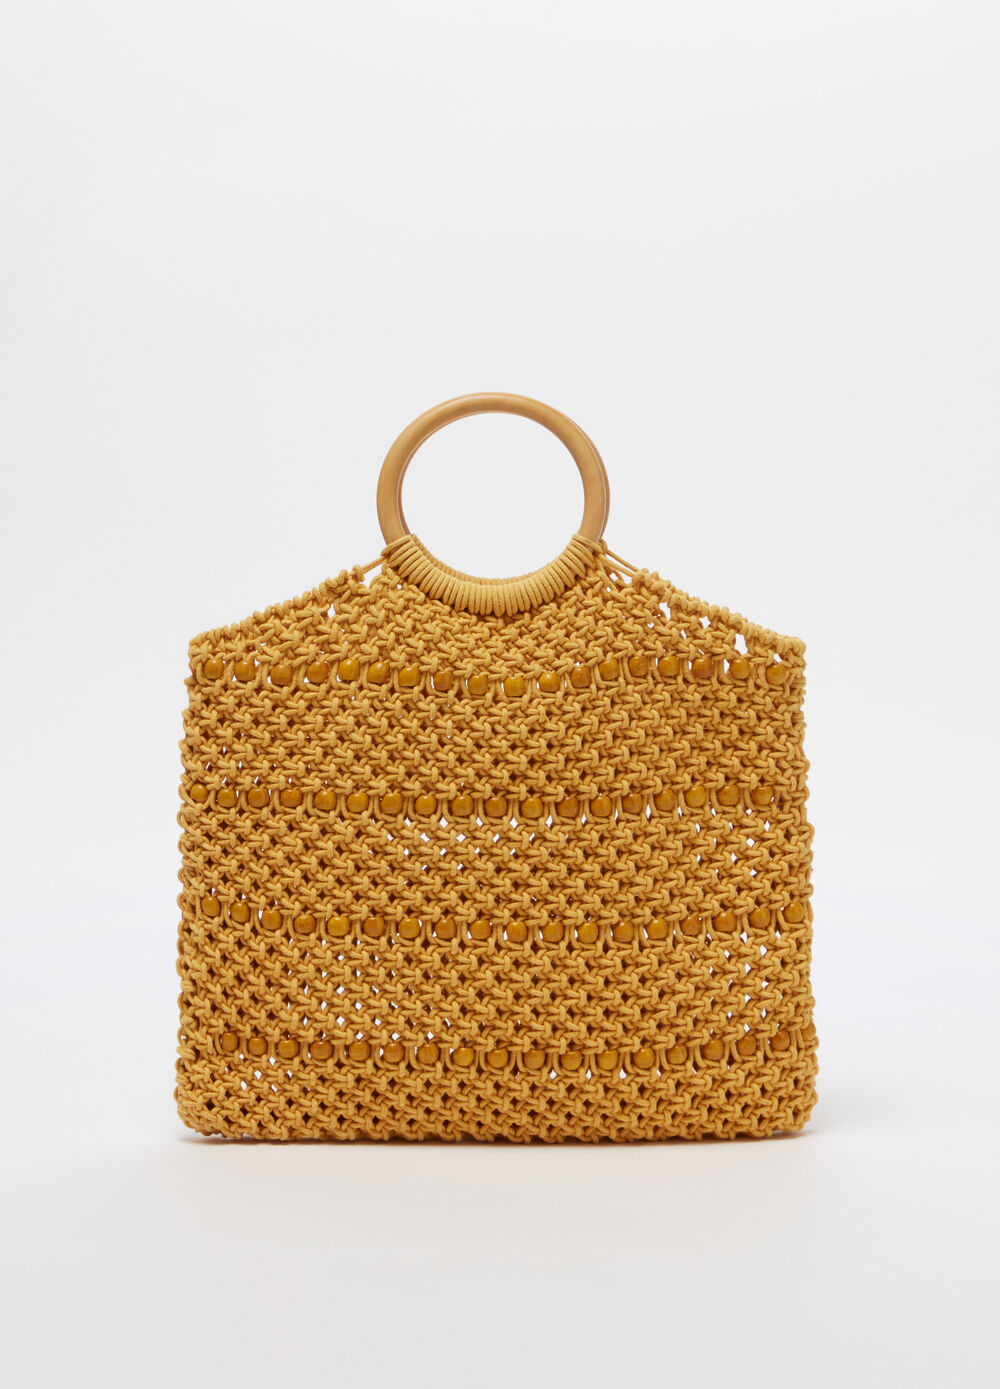 Crochet bag with wooden handle